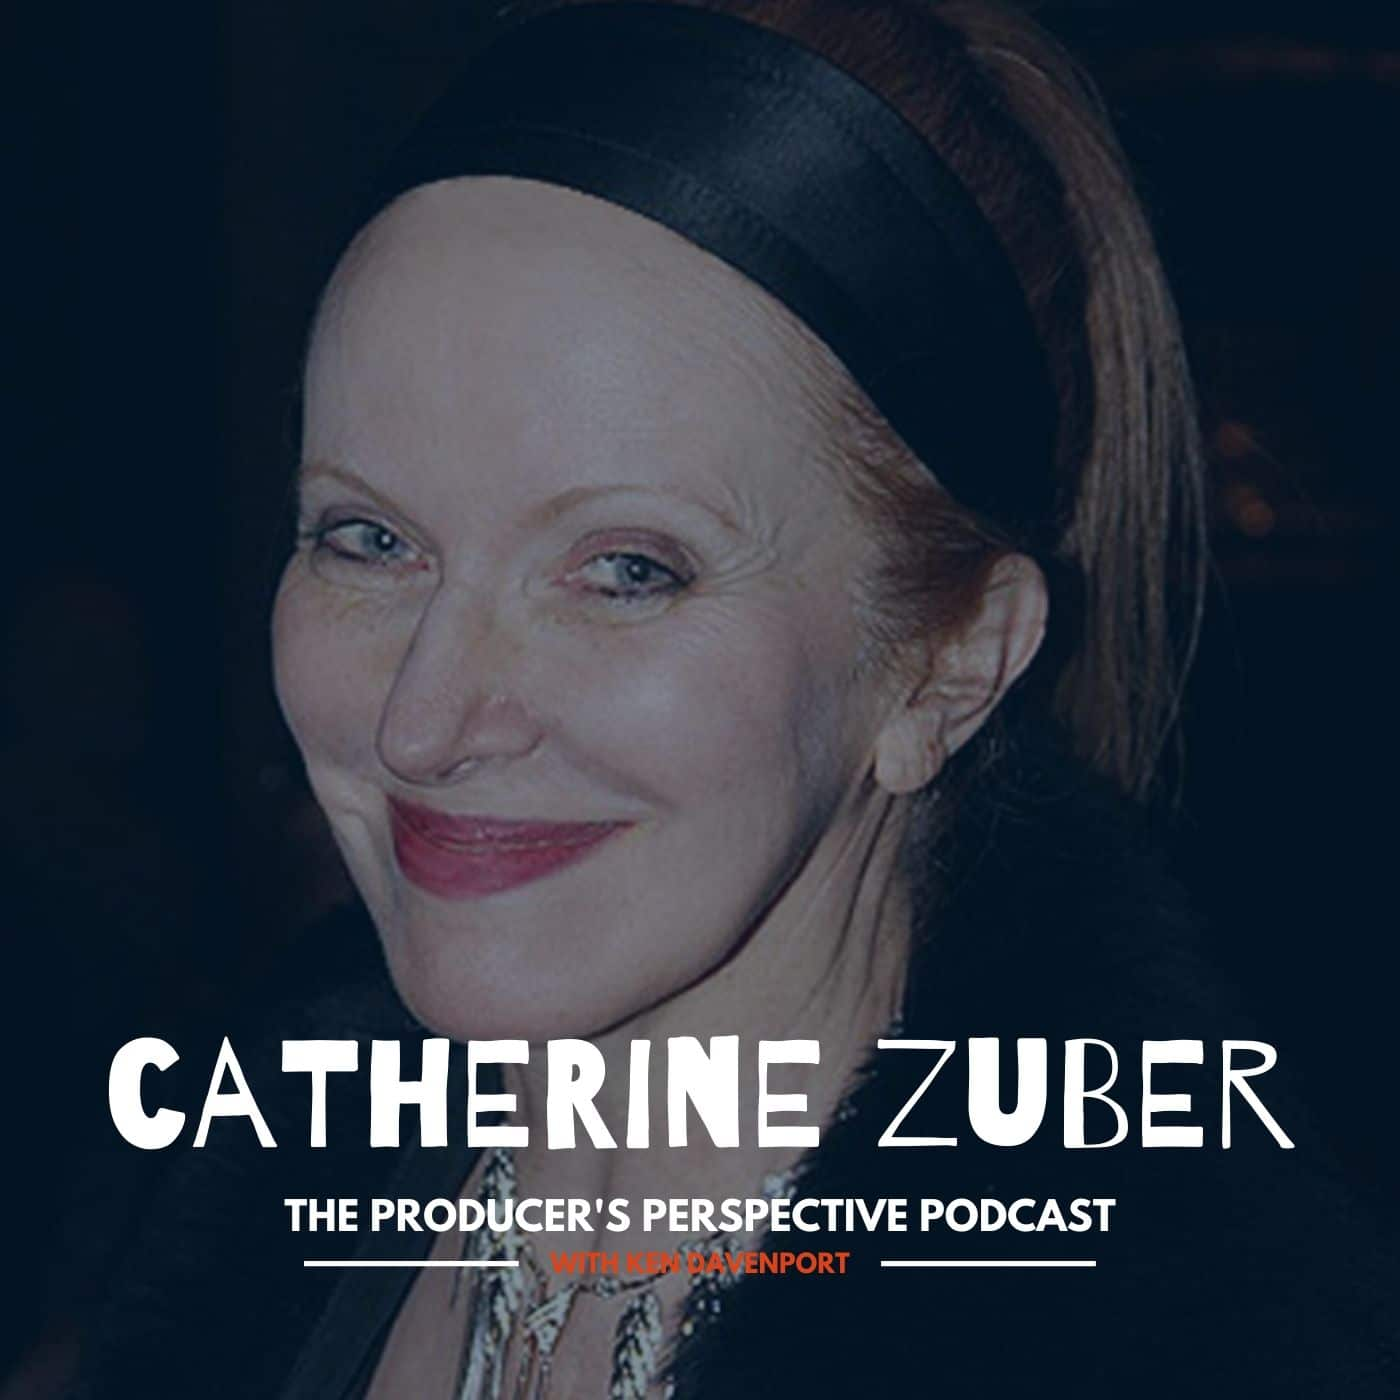 Ken Davenport's The Producer's Perspective Podcast Episode 143 - Catherine Zuber